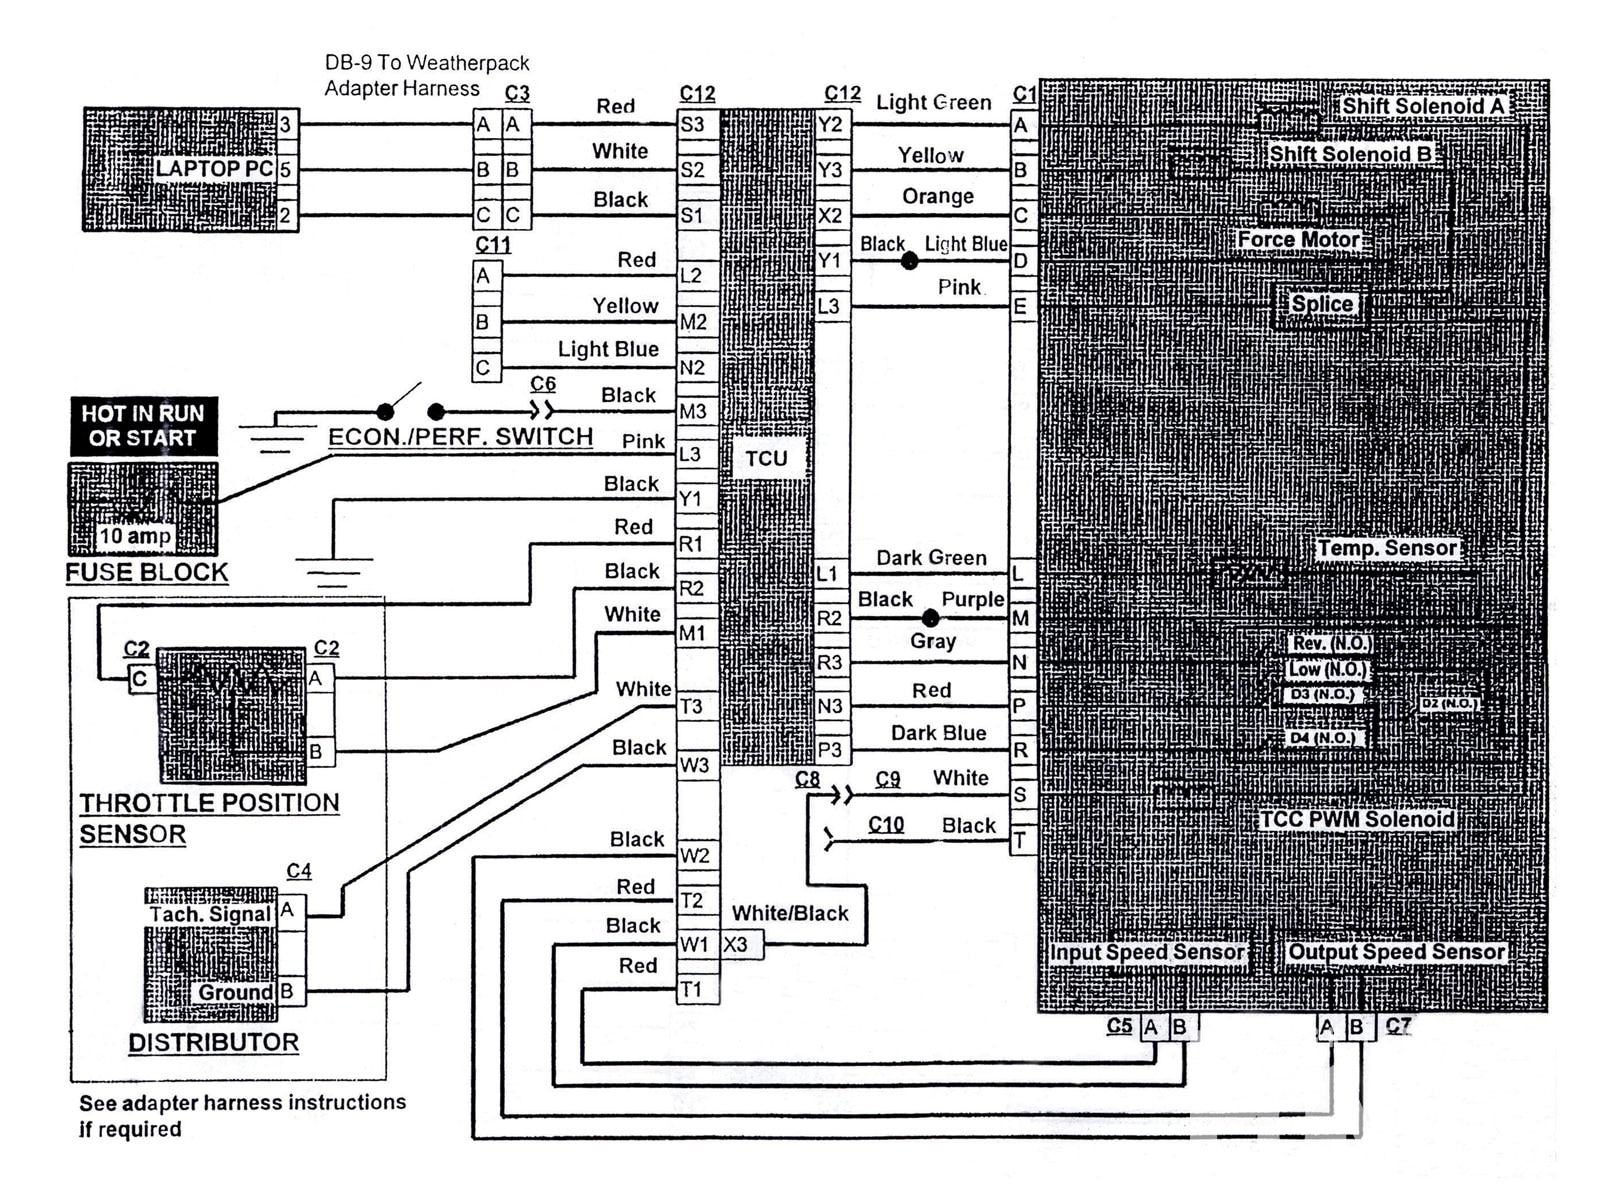 hight resolution of 1974 pontiac engine diagram wiring diagram database 1974 pontiac engine diagram wiring diagram centre 1974 pontiac